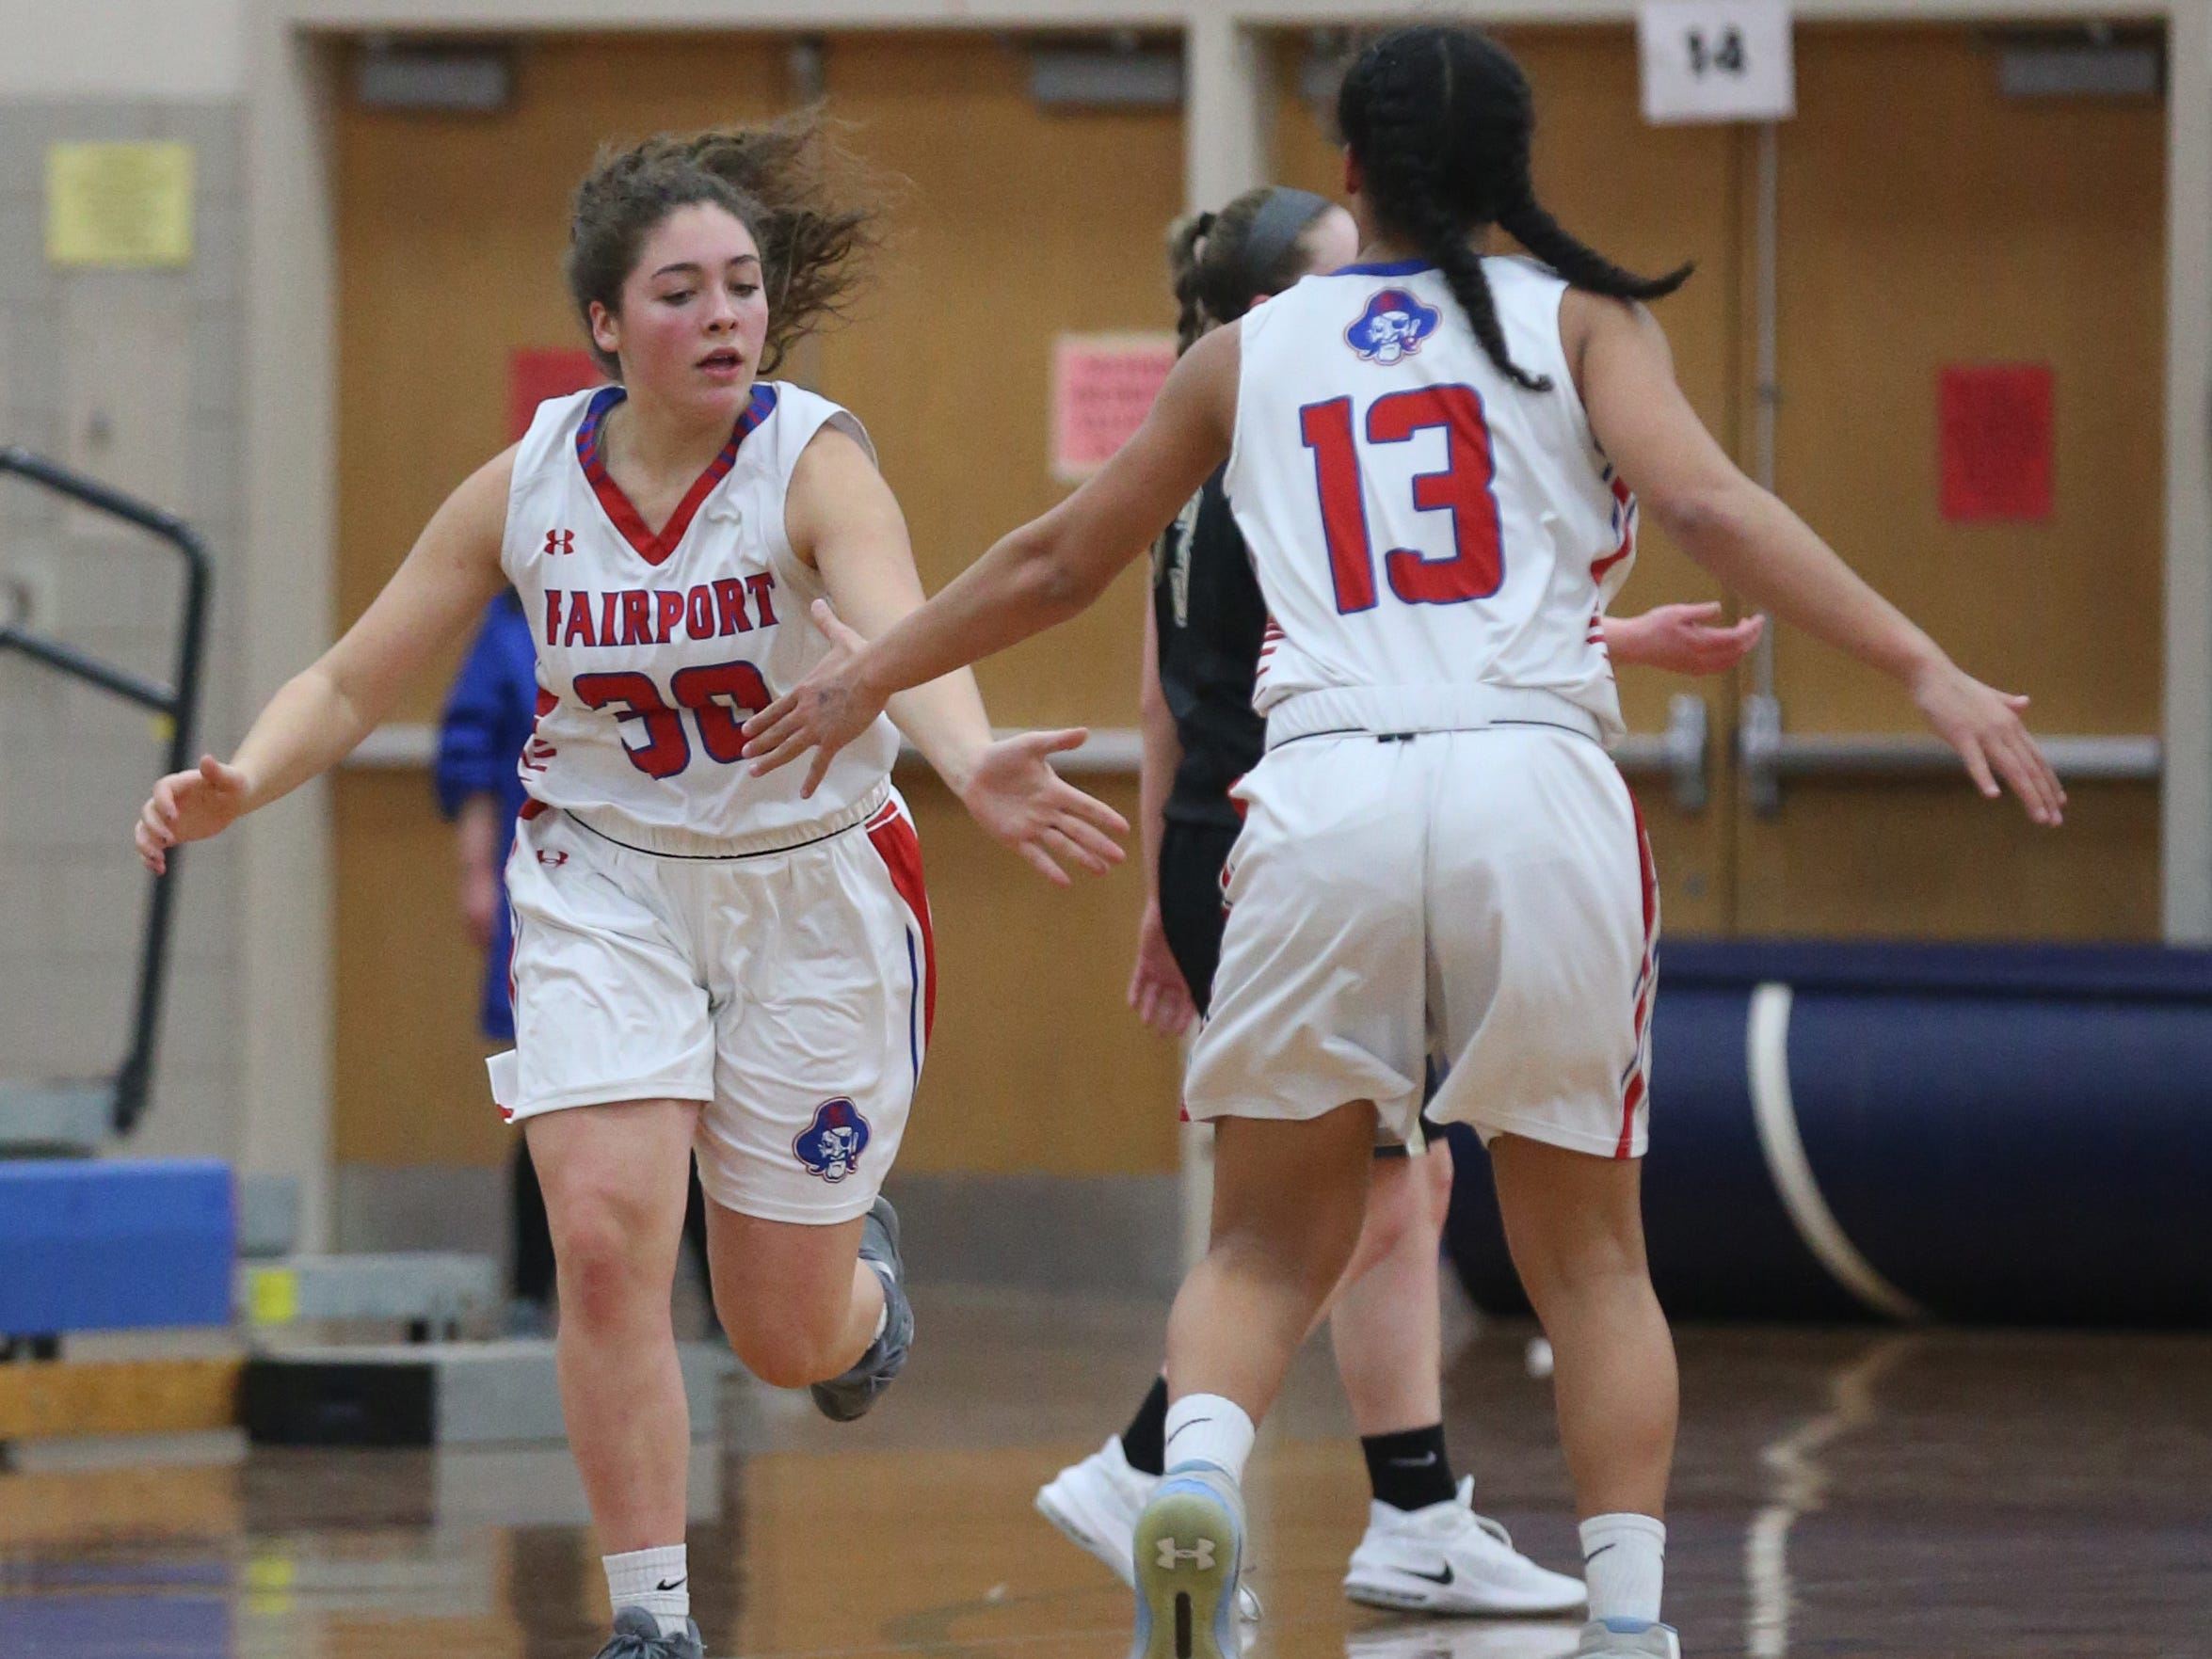 Fairport's Bryn Holmes, left, celebrates her basket with teammate Ella Meabon, right, as they head back down court.